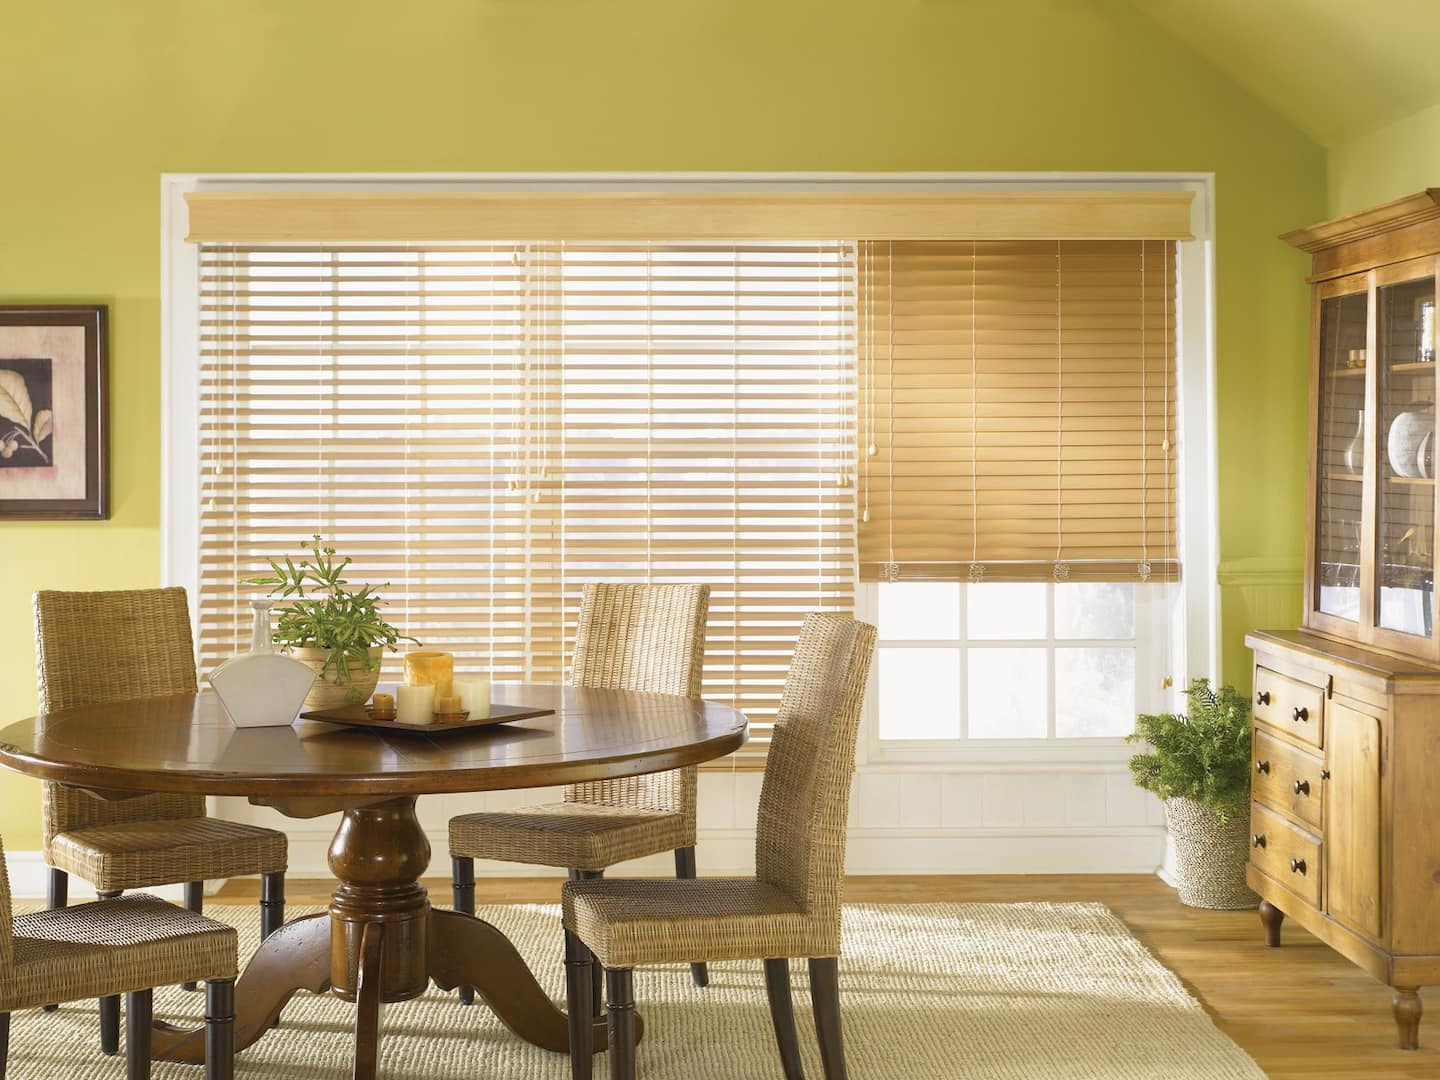 Contemporary Dining Room With Wicker Chairs Country Style Hutch And Composite Wood Blinds